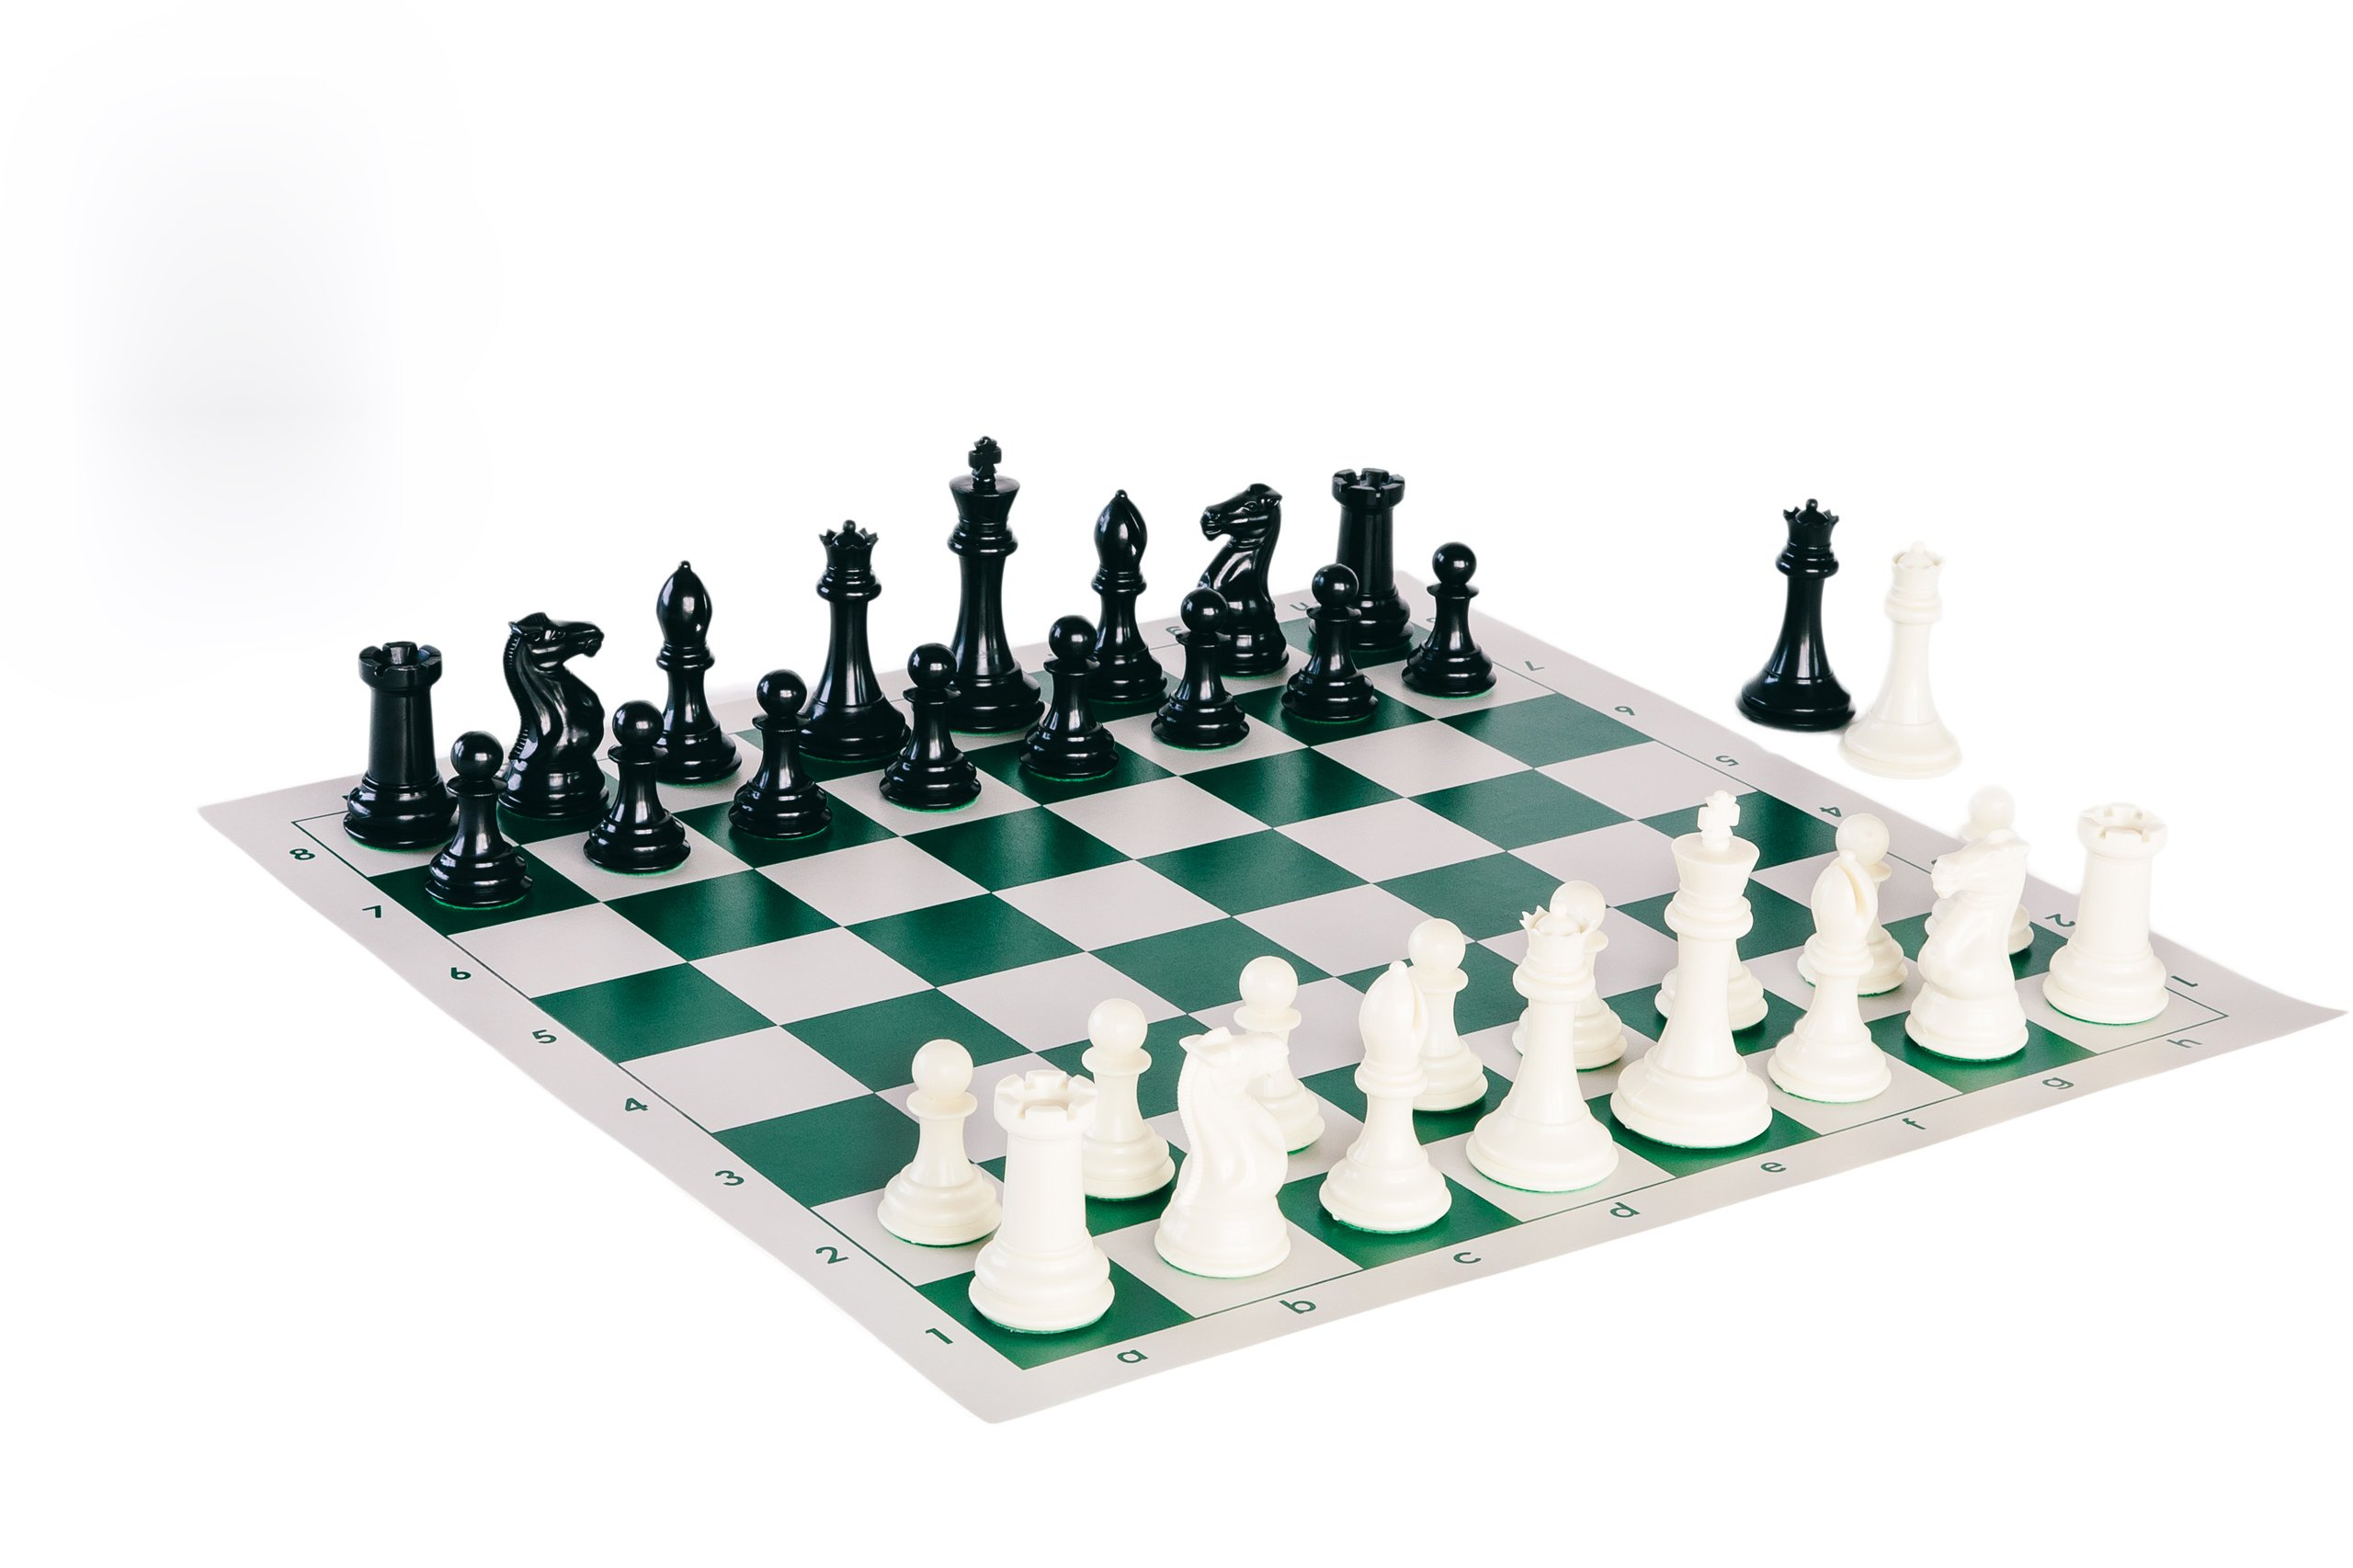 Quadruple Weight Tournament Chess Game Set - Chess Board Game with Staunton Ivory Chess Pieces, Green Vinyl Chess Board